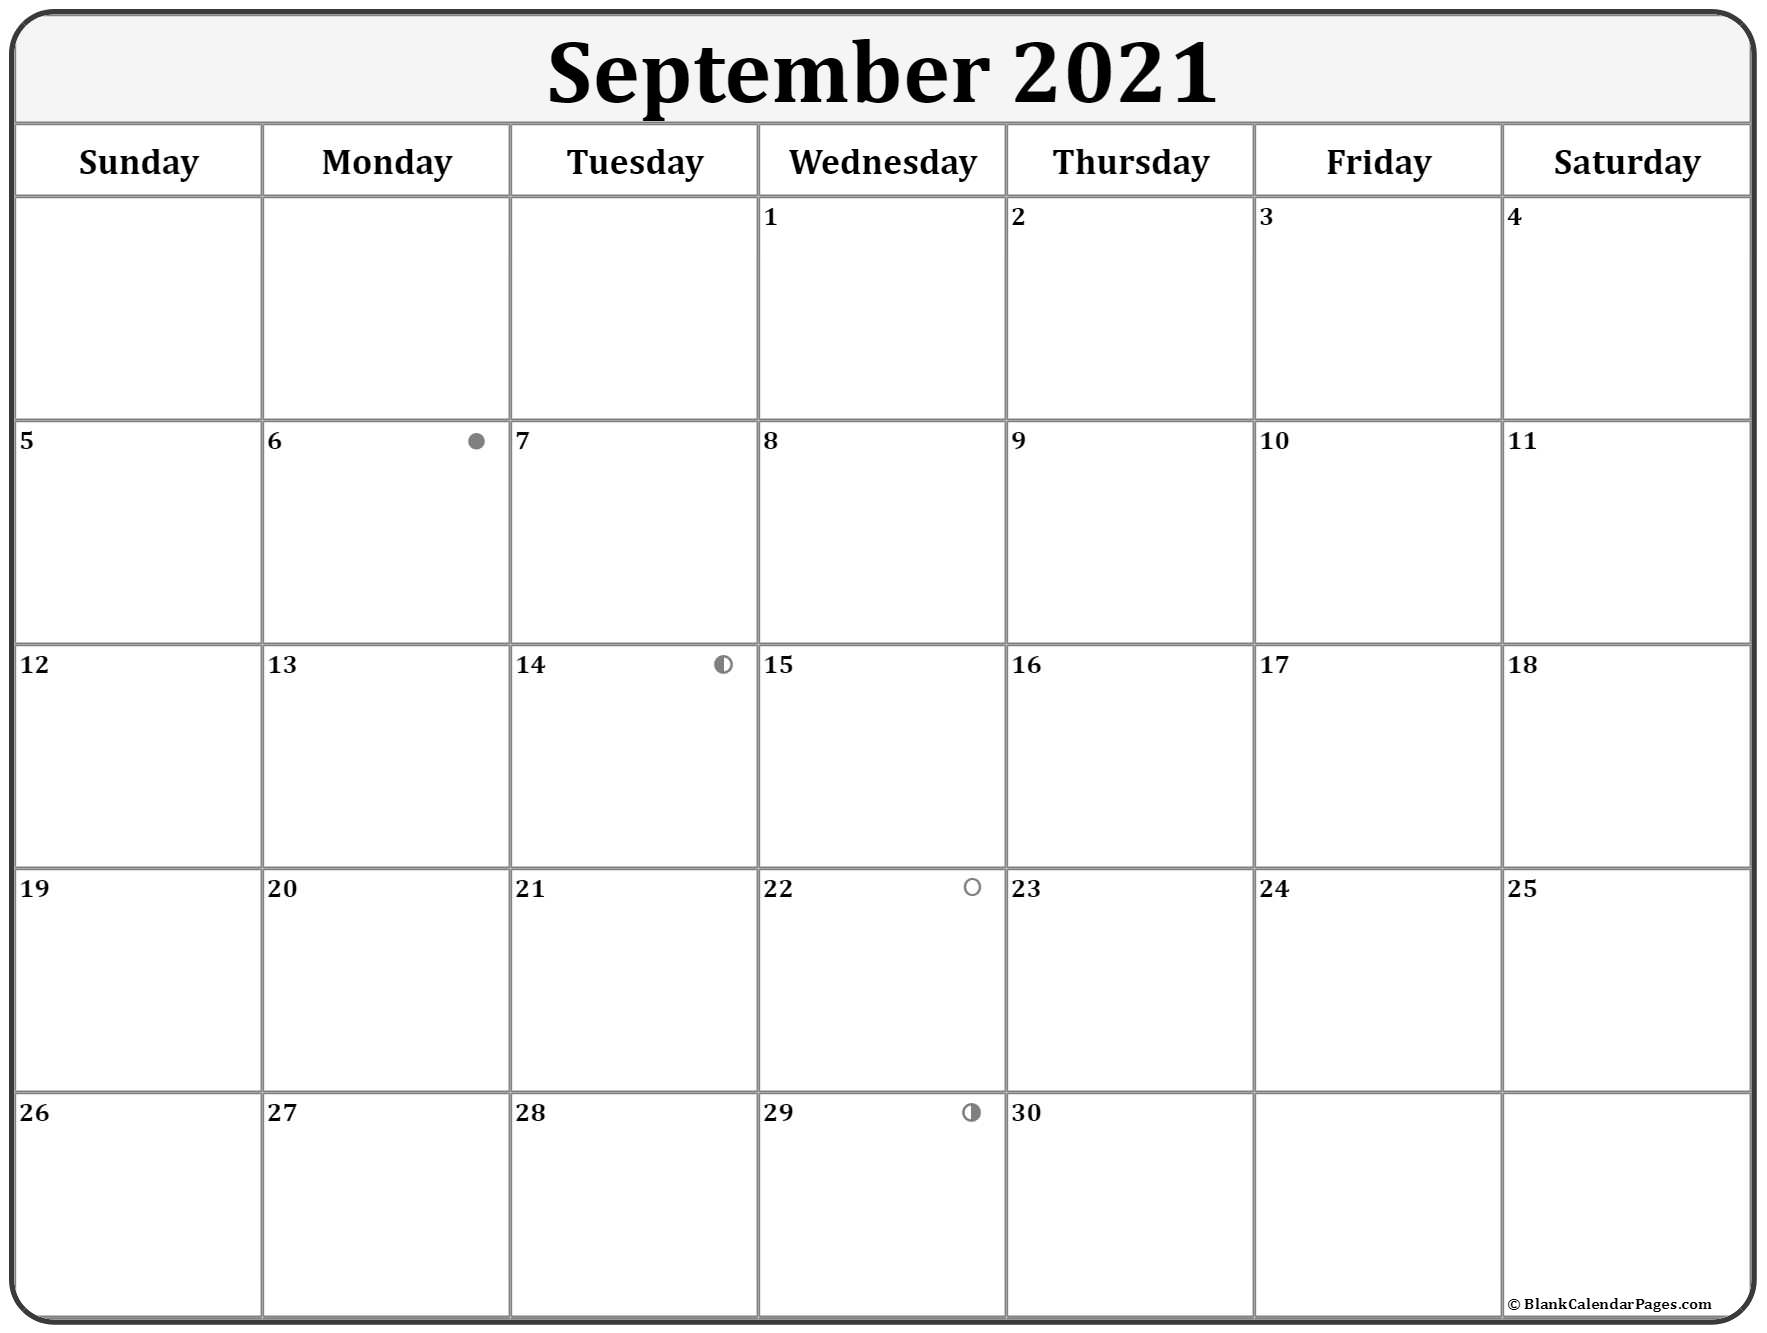 Collect Moon Phases September 2021